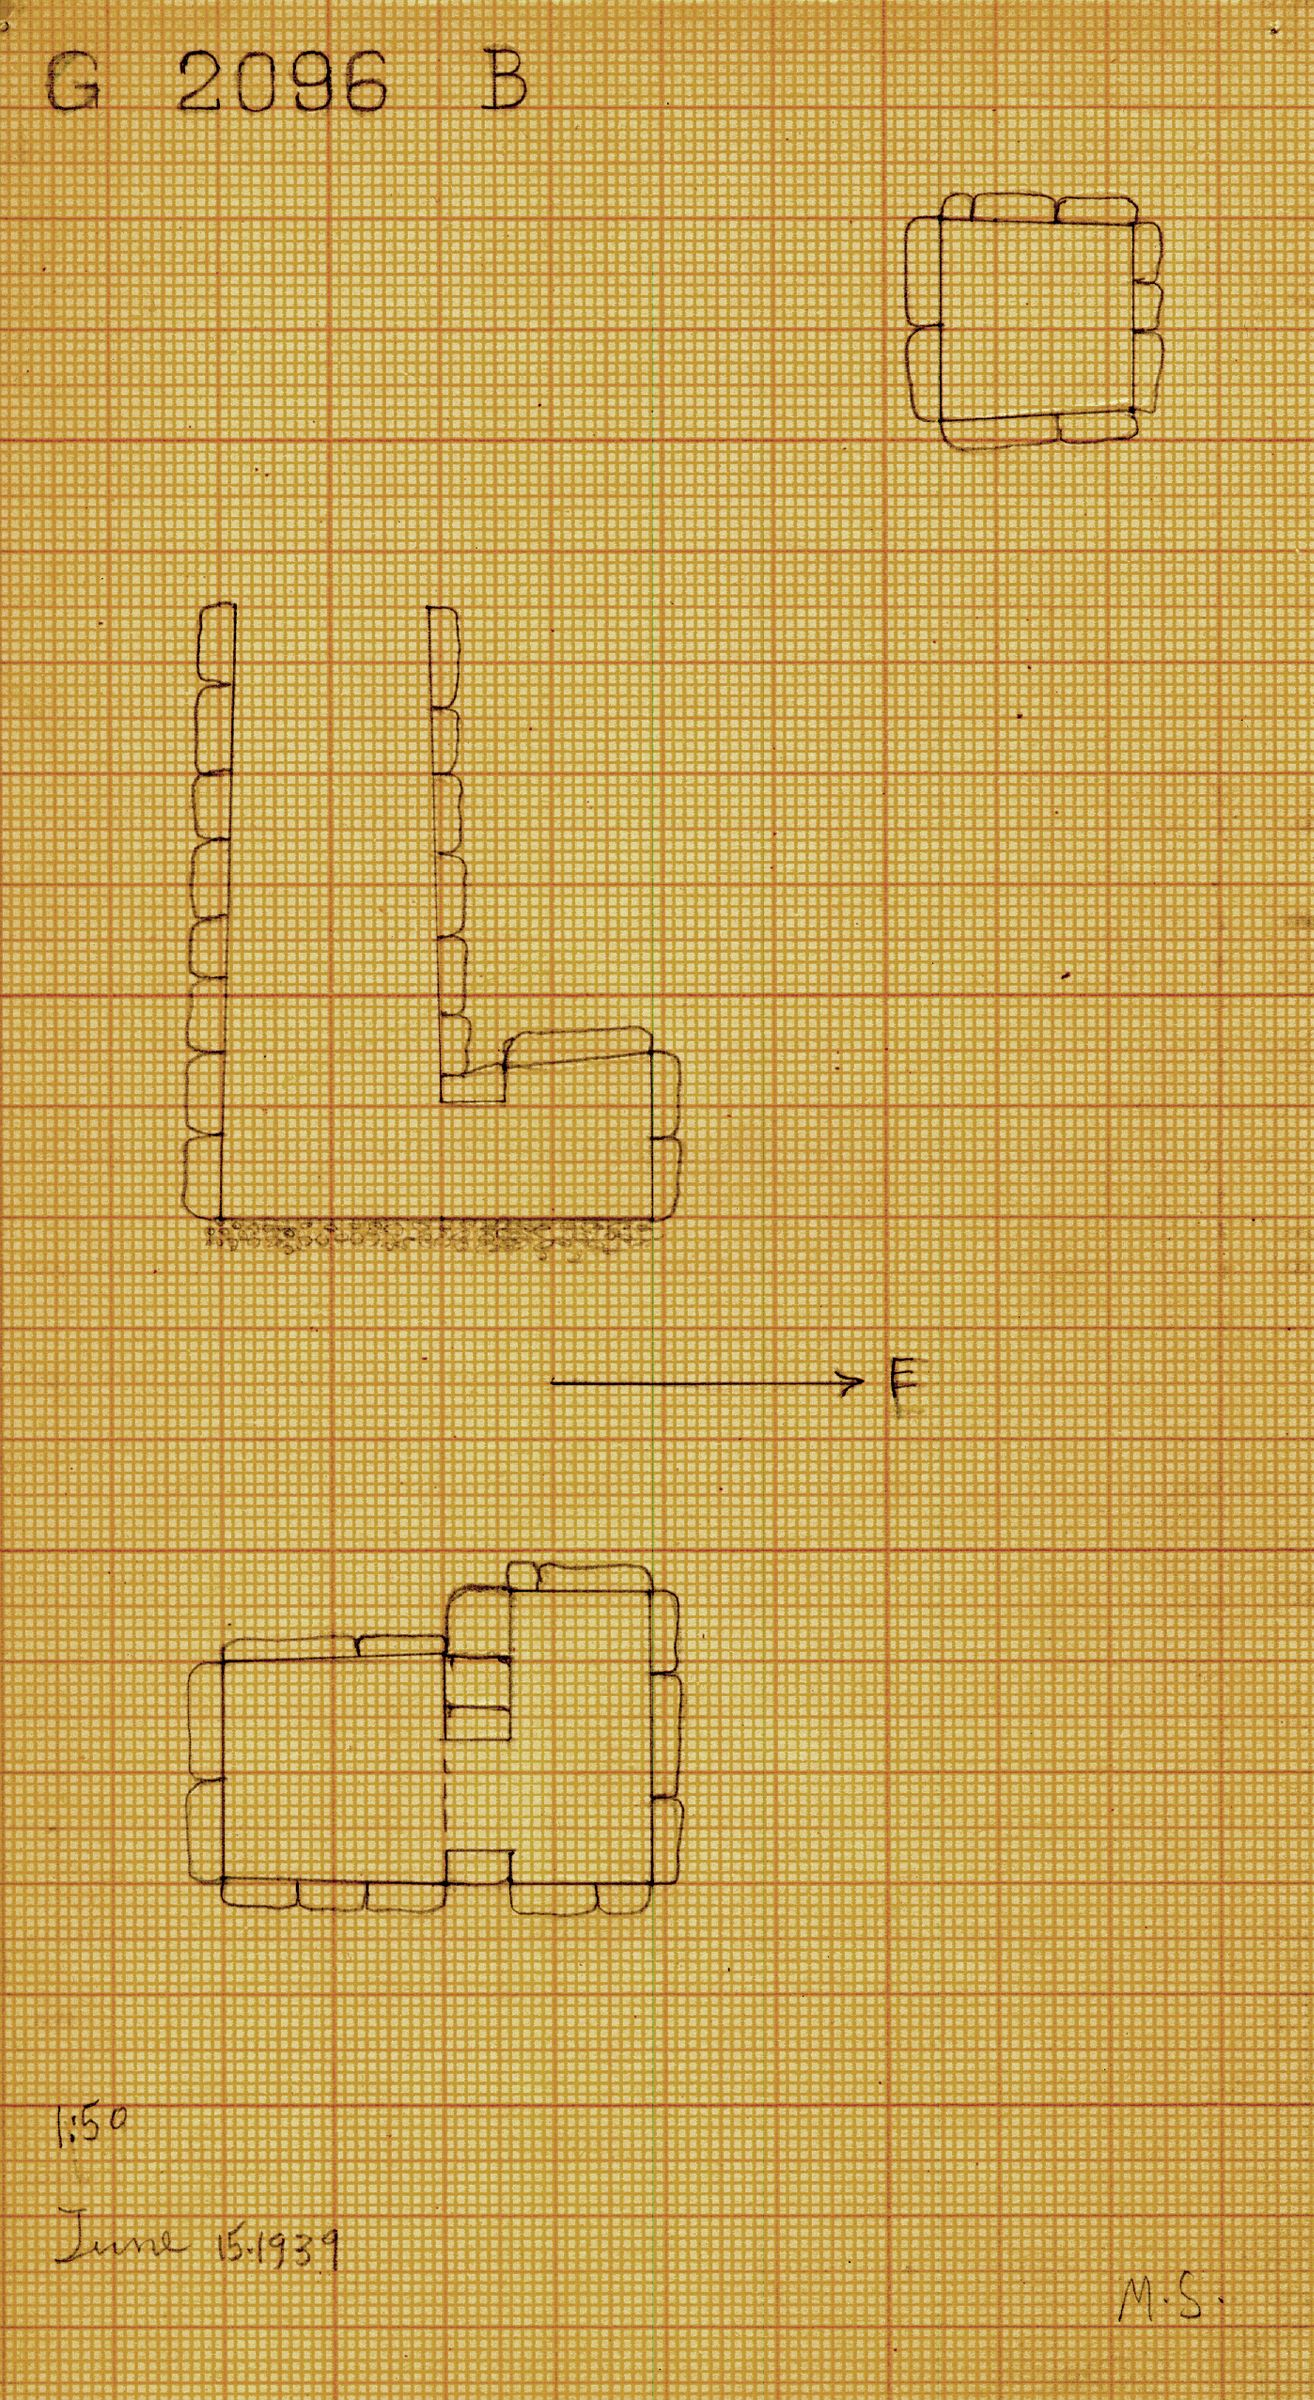 Maps and plans: G 2096, Shaft B